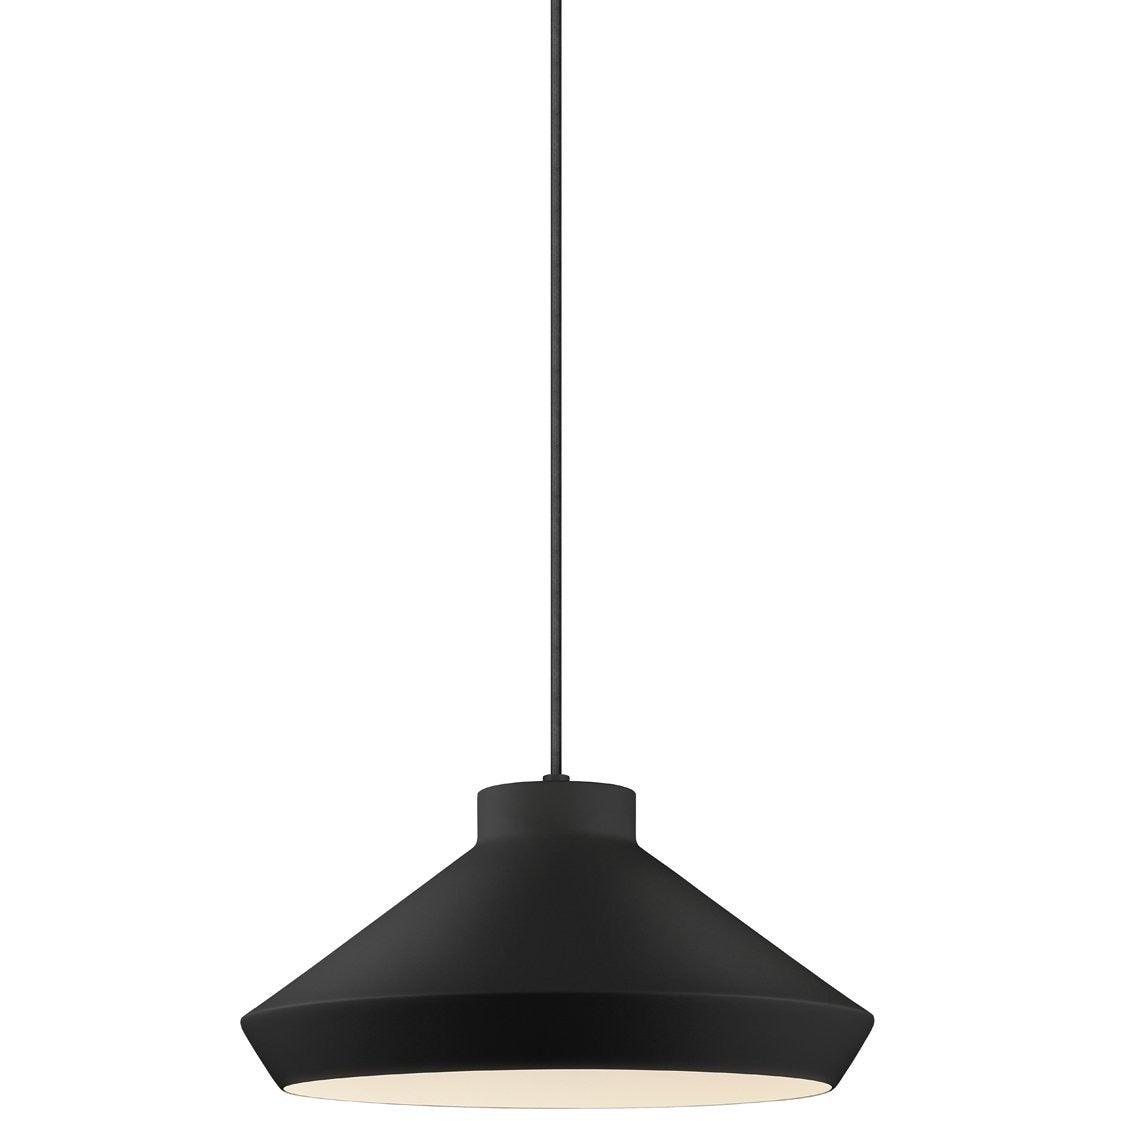 Sonneman - A Way of Light - 2752.25-E - One Light Pendant - Koma - Satin Black